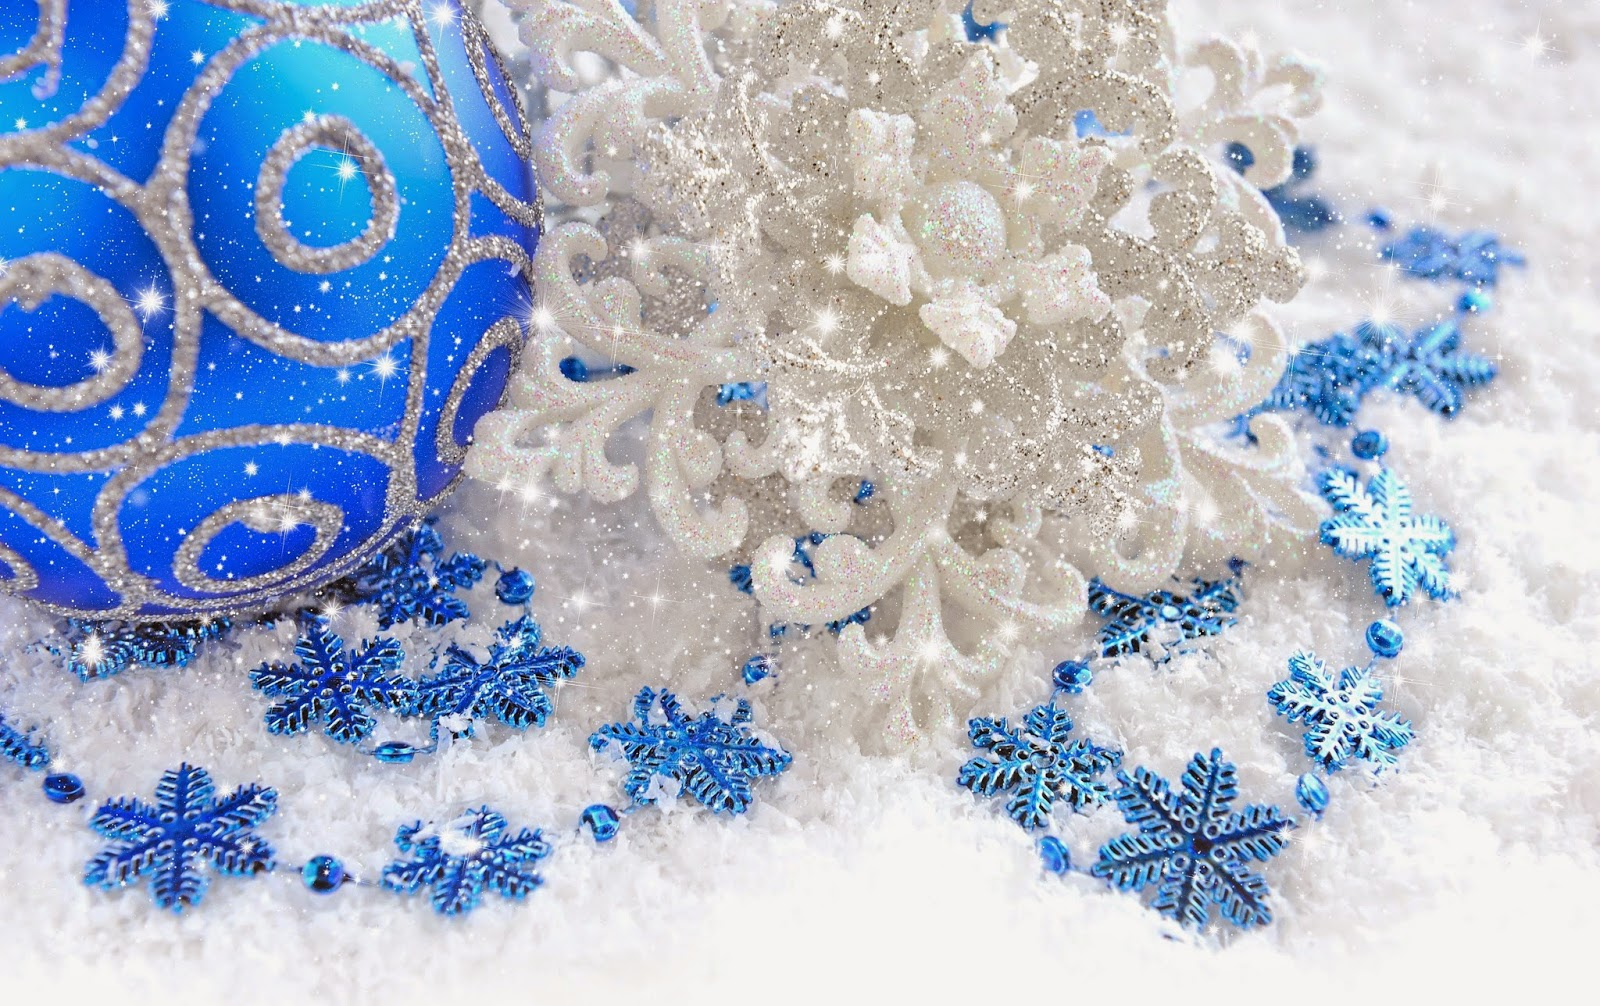 Blue-color-baubles-with-silver-snow-design-white-background-HD-wallpaper.jpg